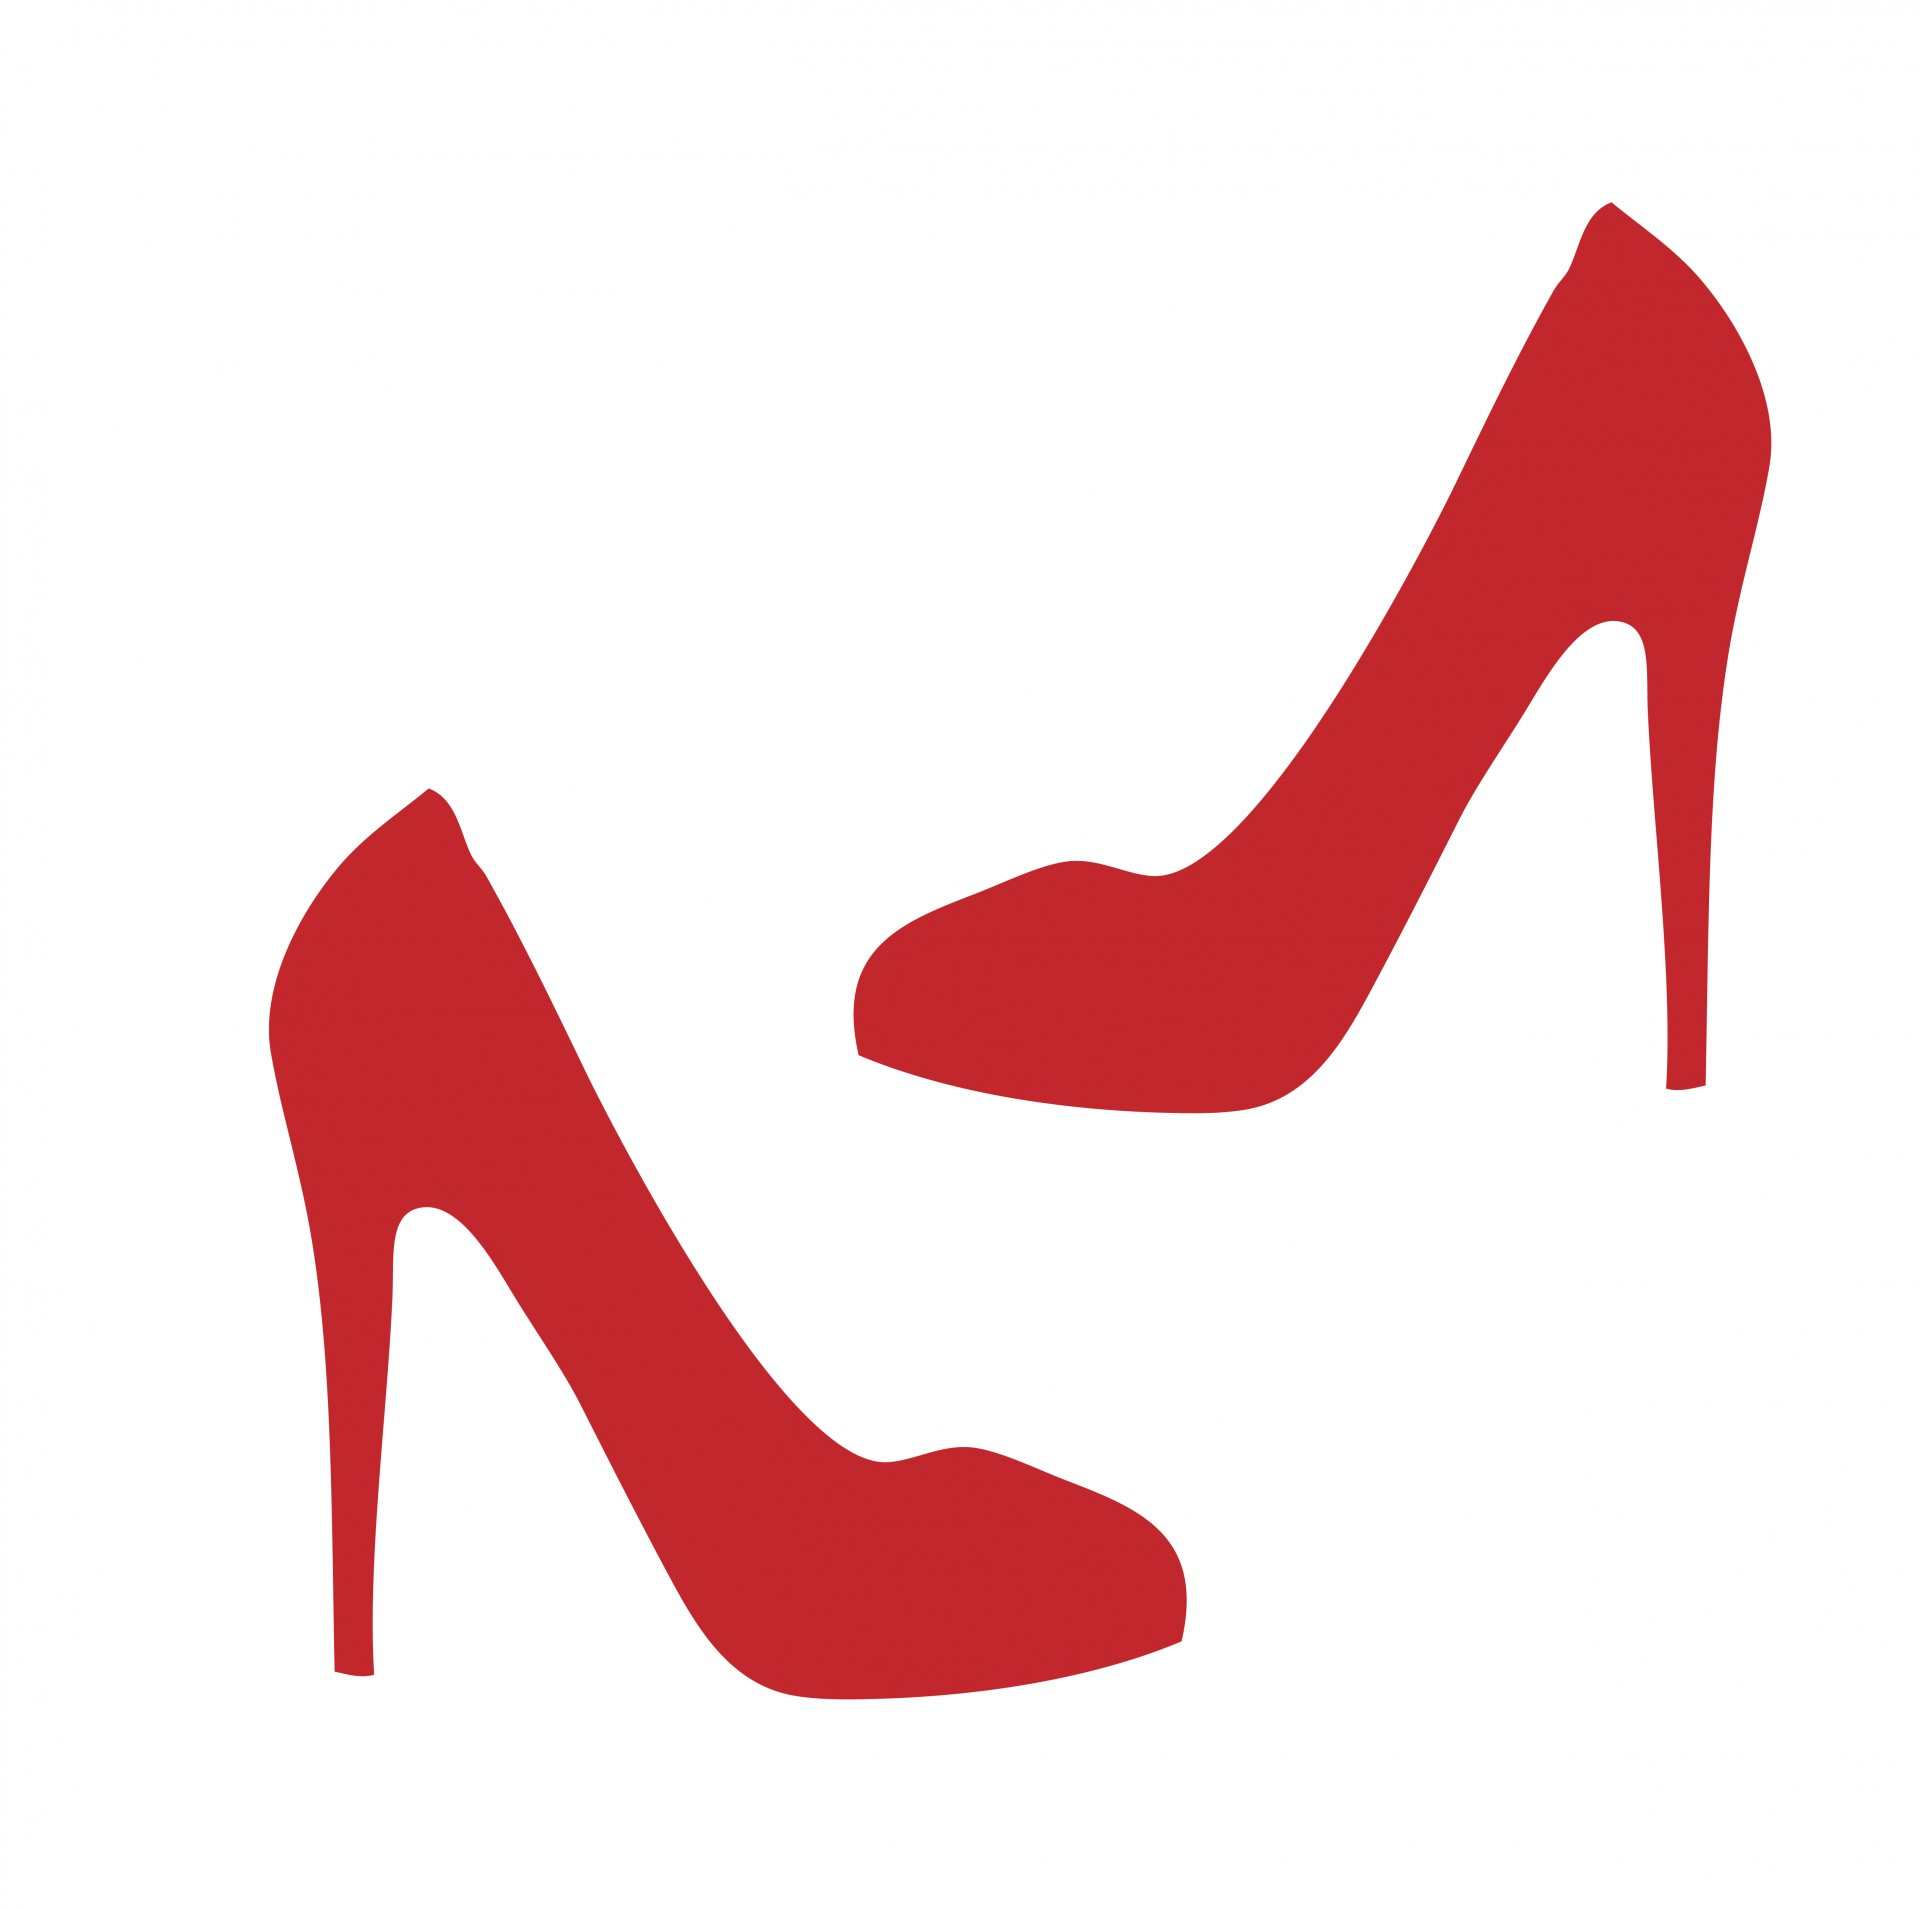 Walking red bottom heels clipart svg black and white library 56+ Heels Clipart | ClipartLook svg black and white library